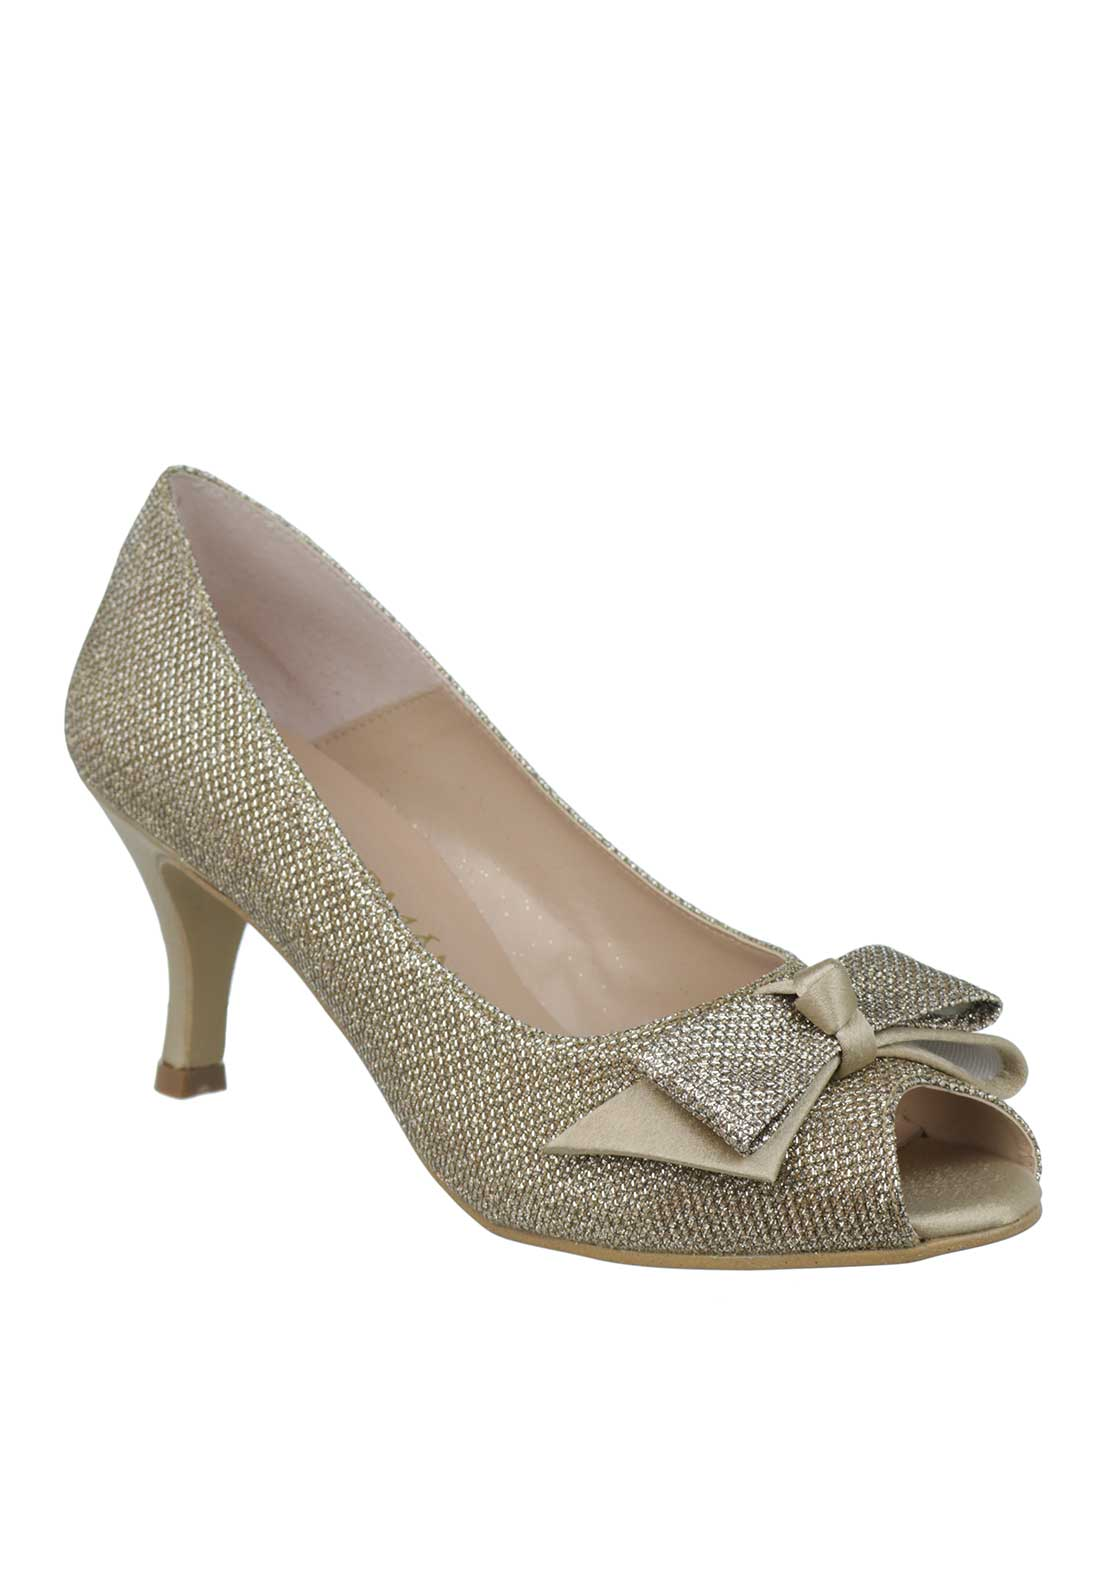 Ana Roman Shimmer Bow Peep Toe Heeled Shoes, Gold